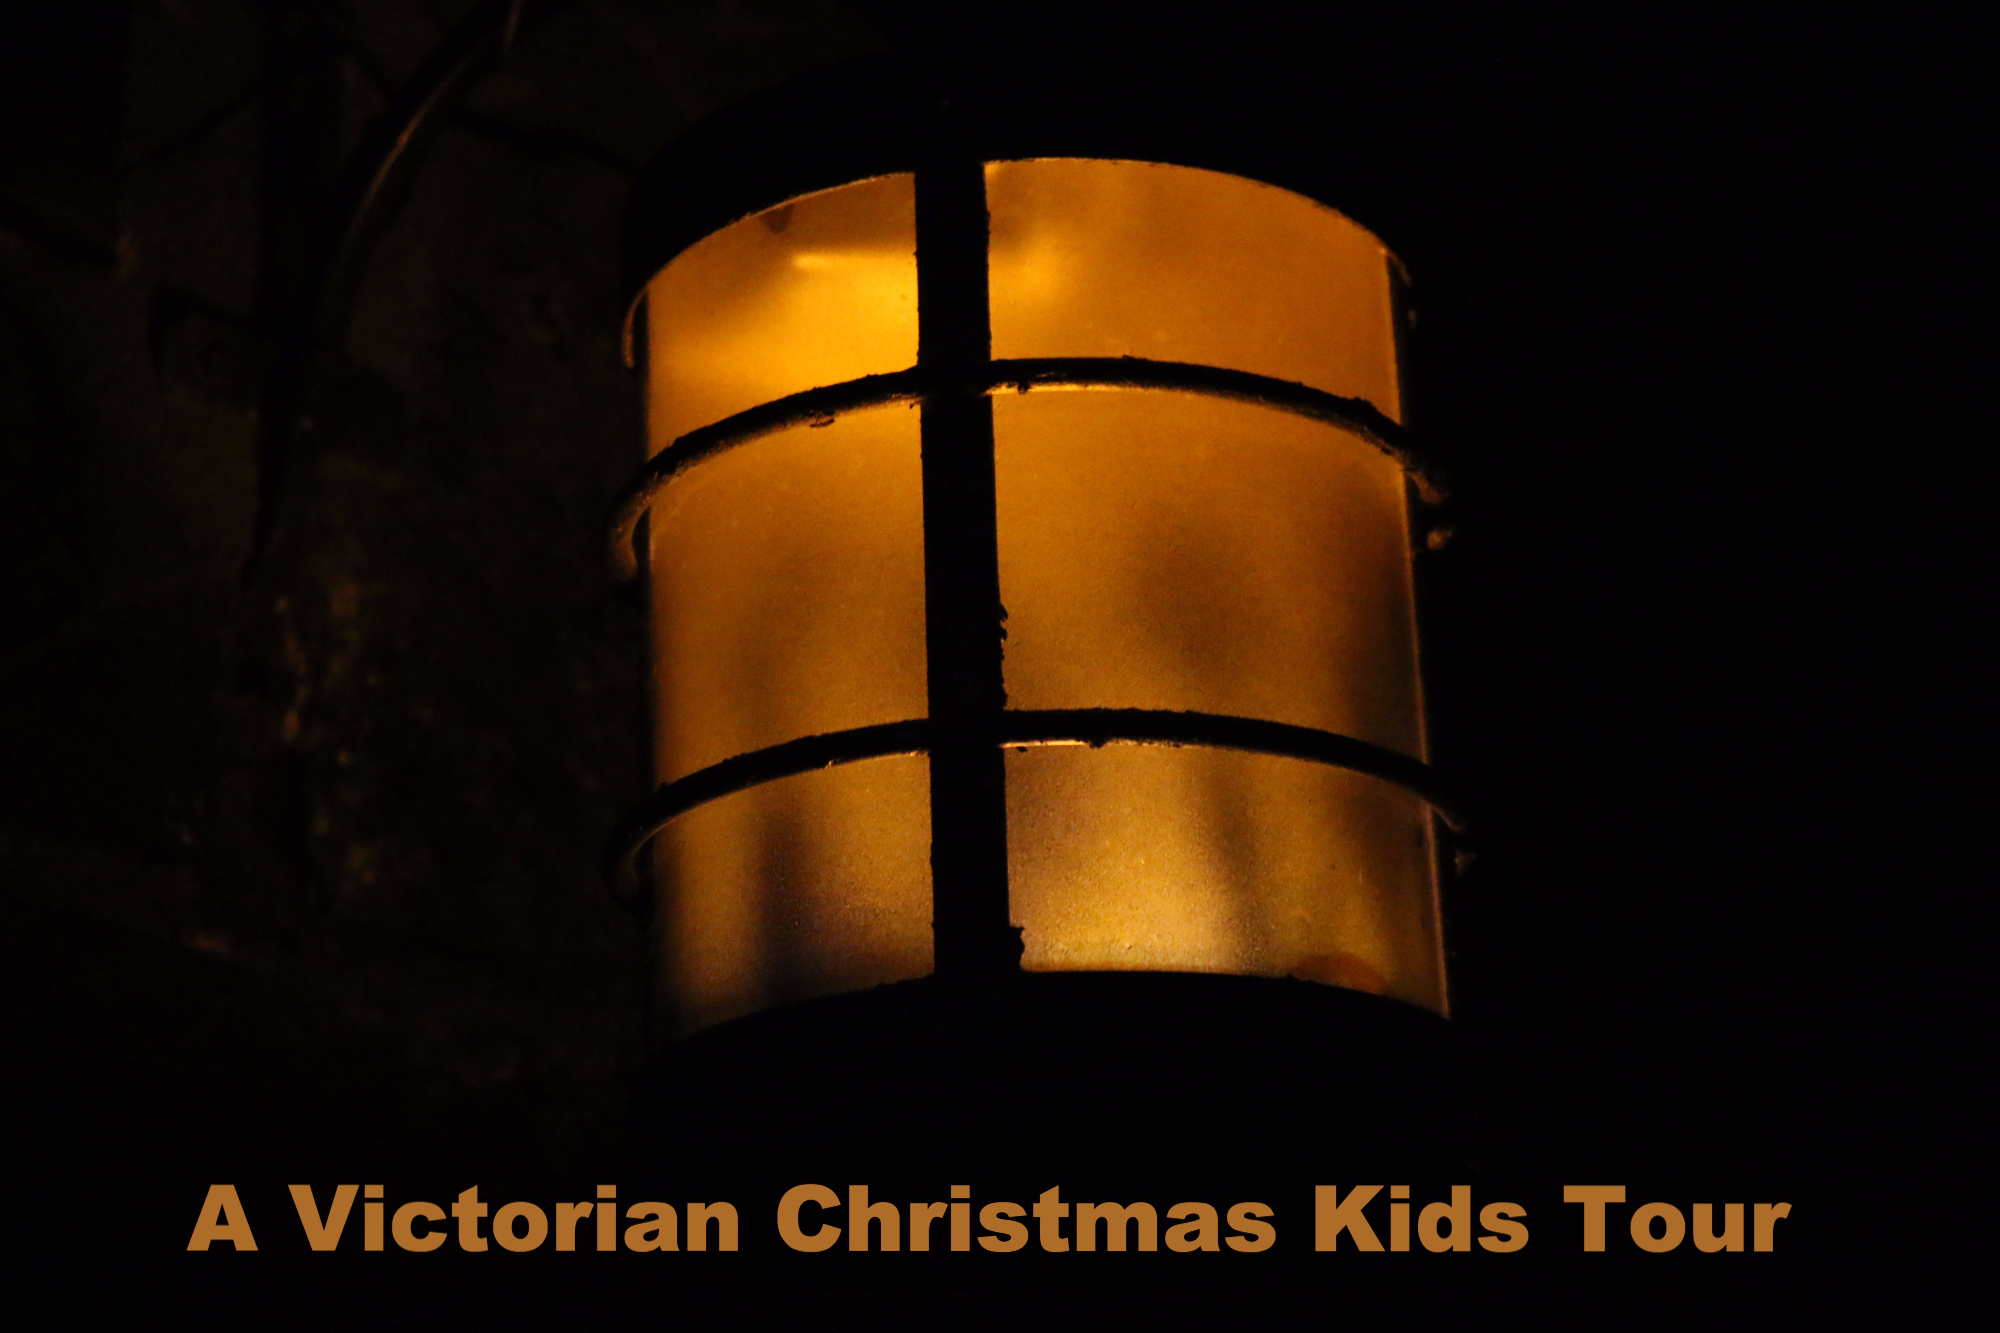 A Victorian Christmas tour for kids and families